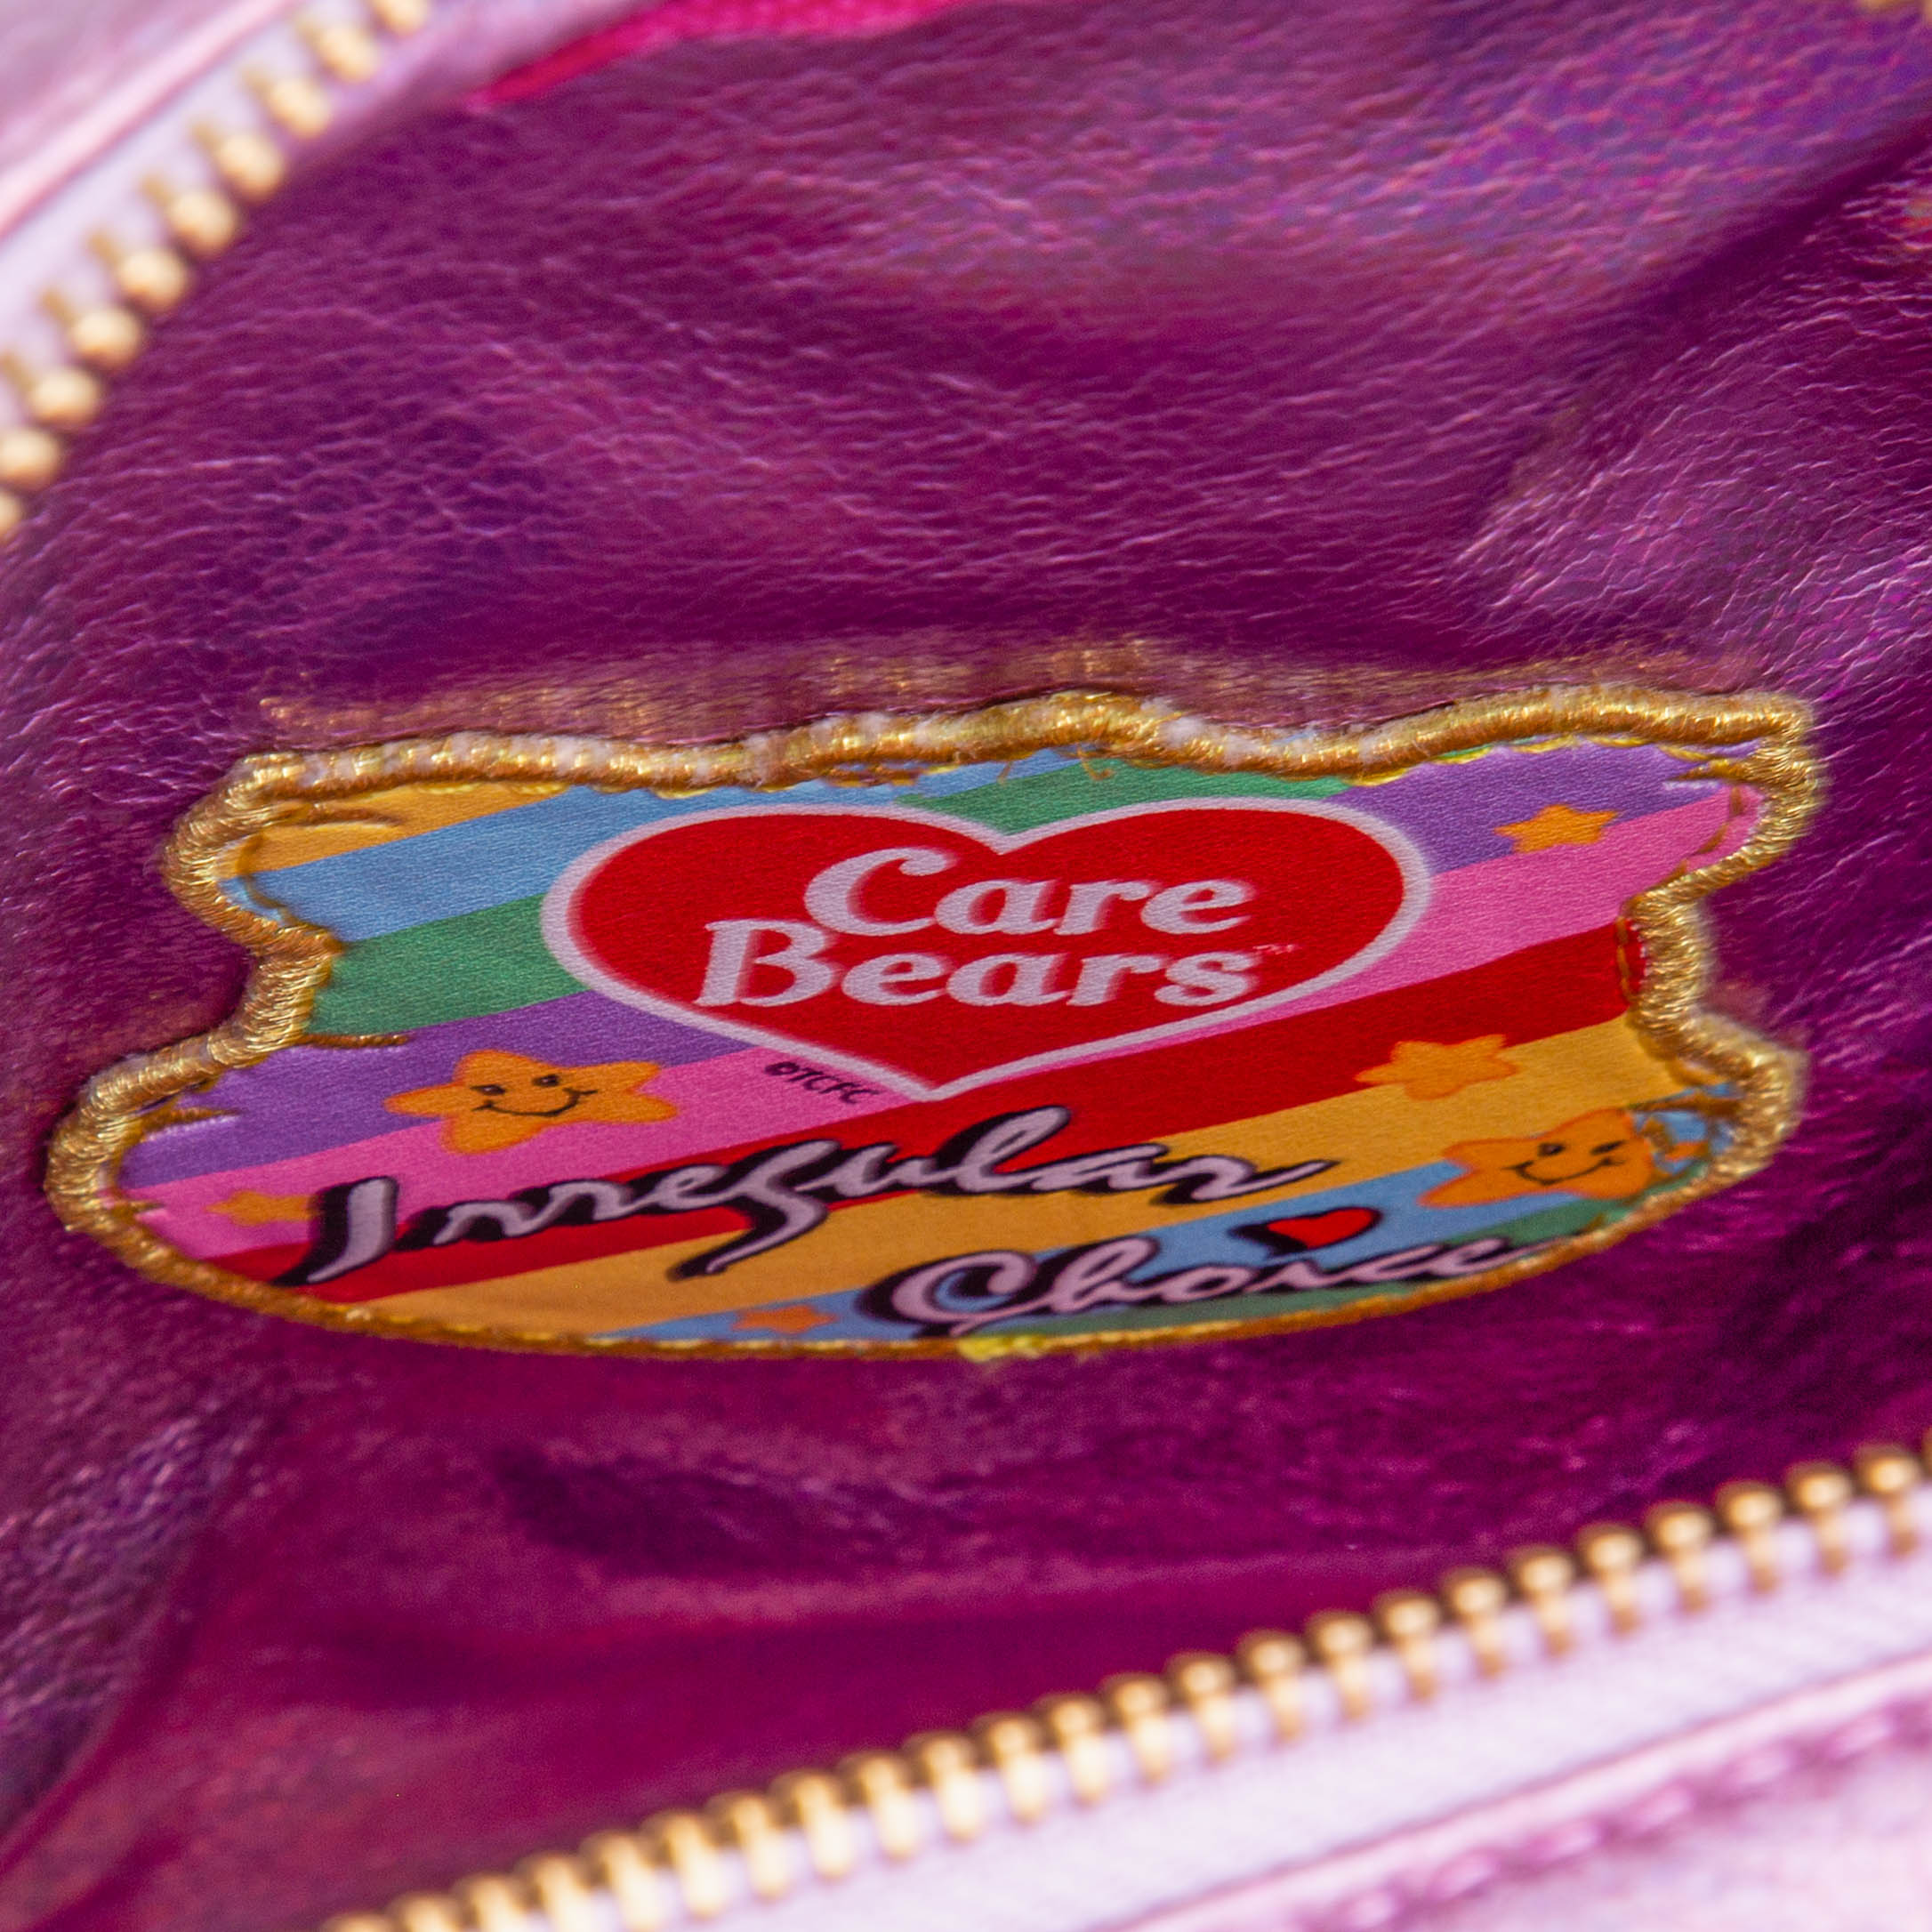 Care Bears Full Of Cheer Bag